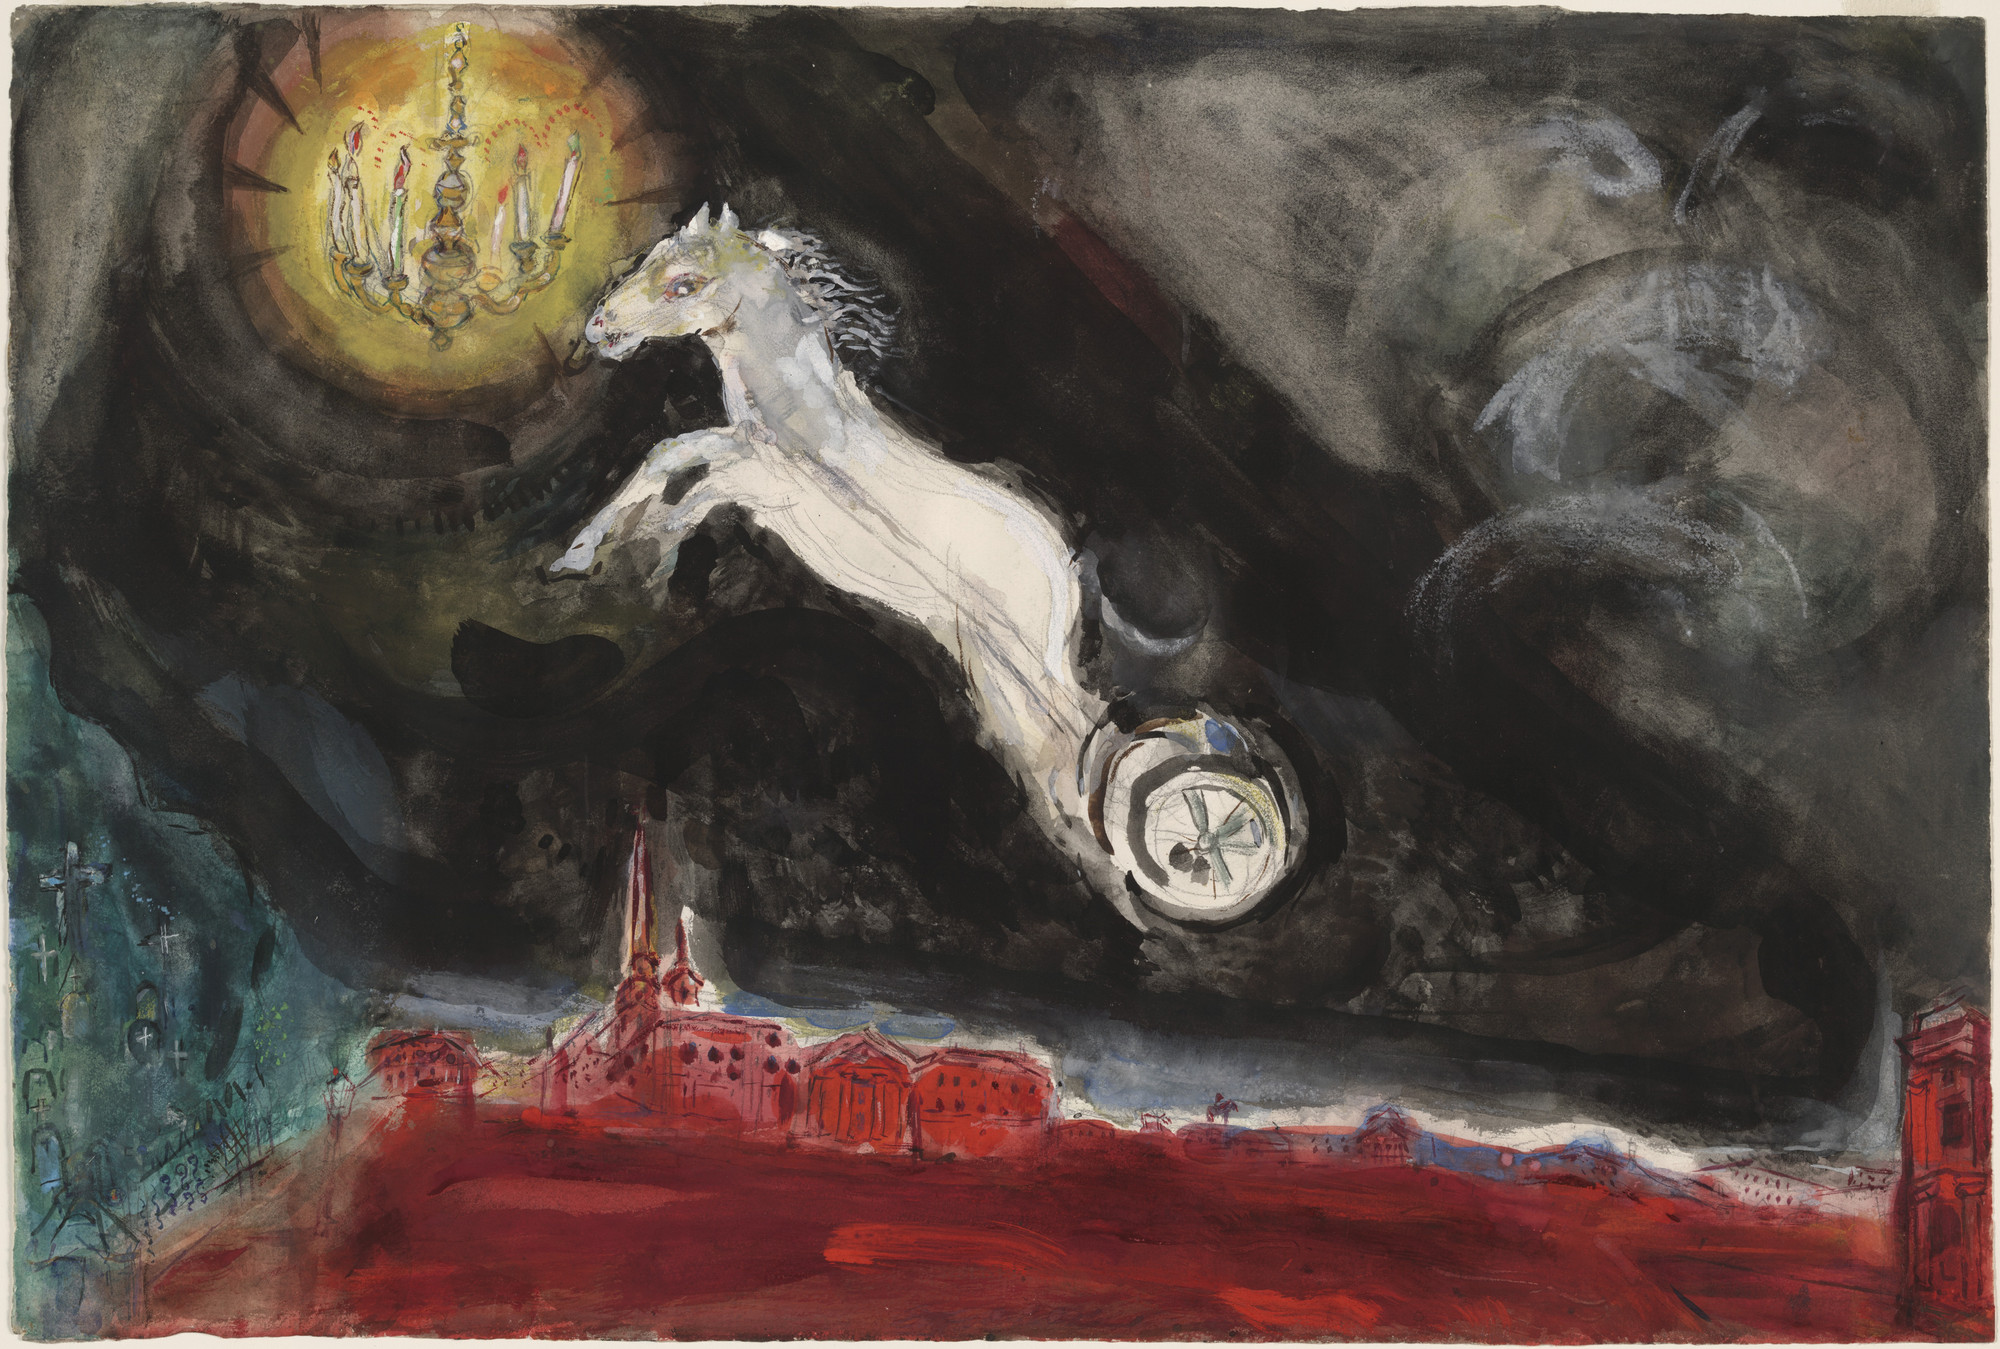 Marc Chagall. A Fantasy of St. Petersburg. Study for backdrop for Scene IV of the ballet Aleko. (1942)